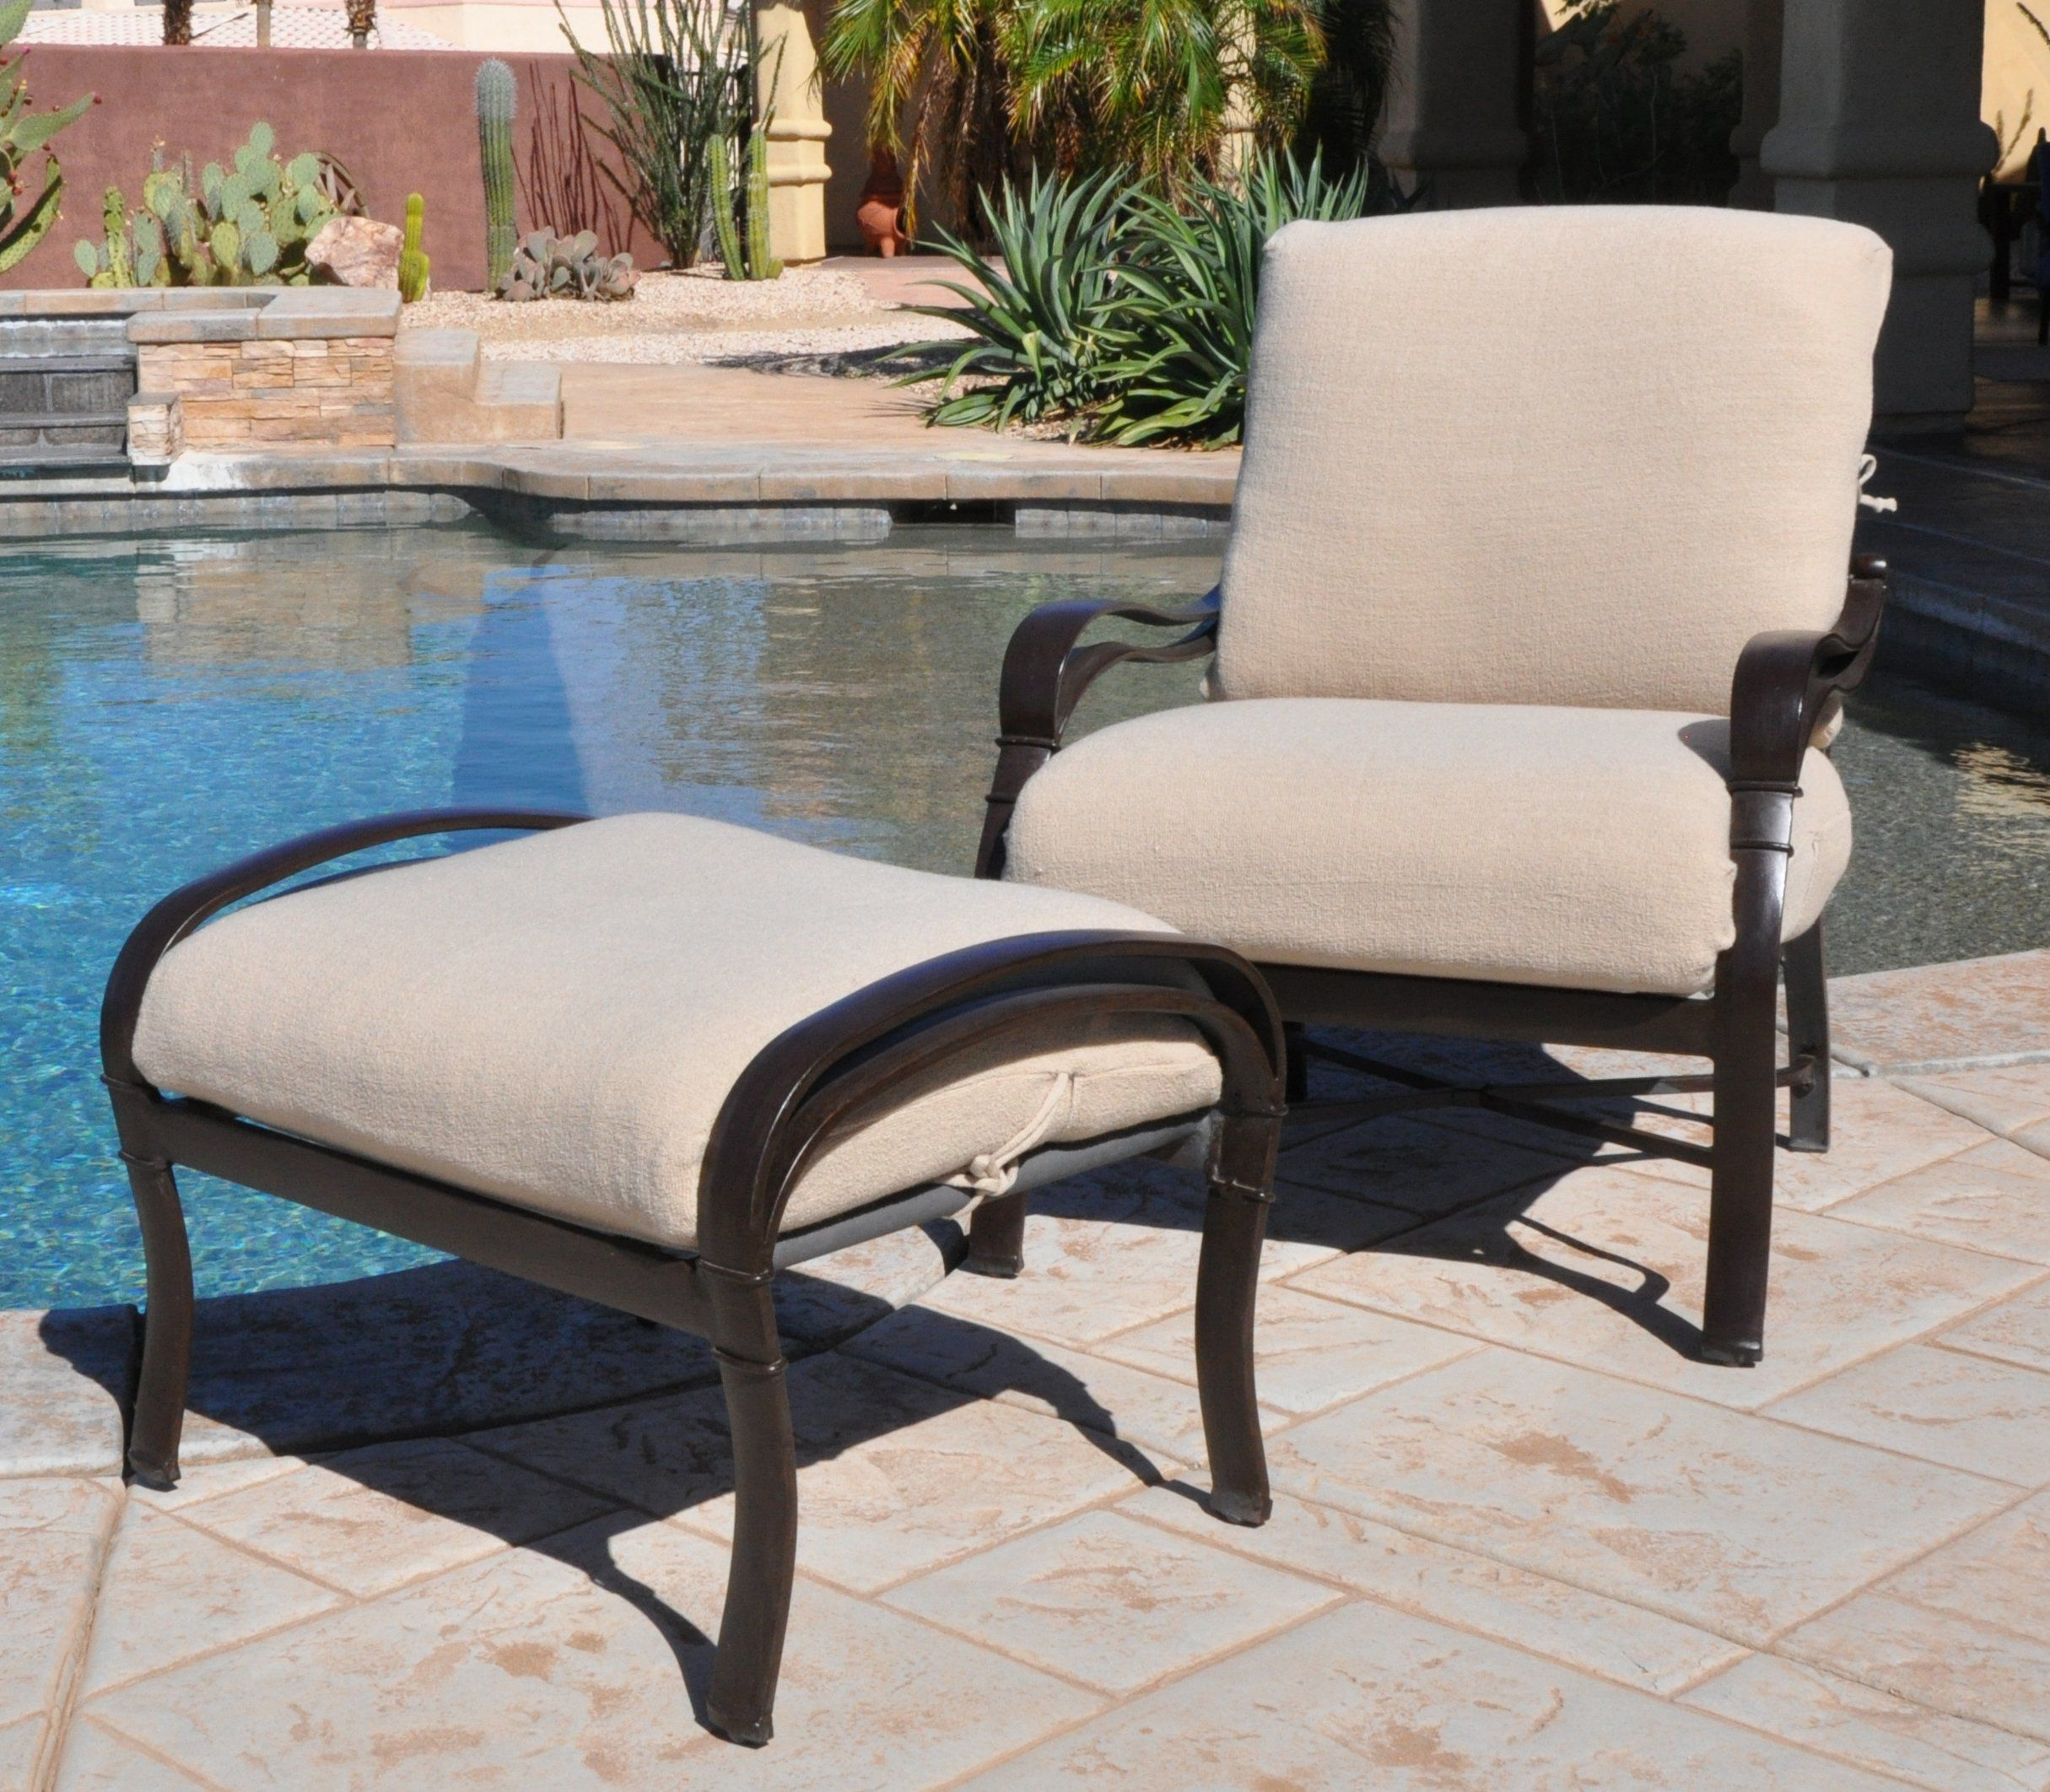 Cushychic outdoor terry slipcovers for deep seat patio